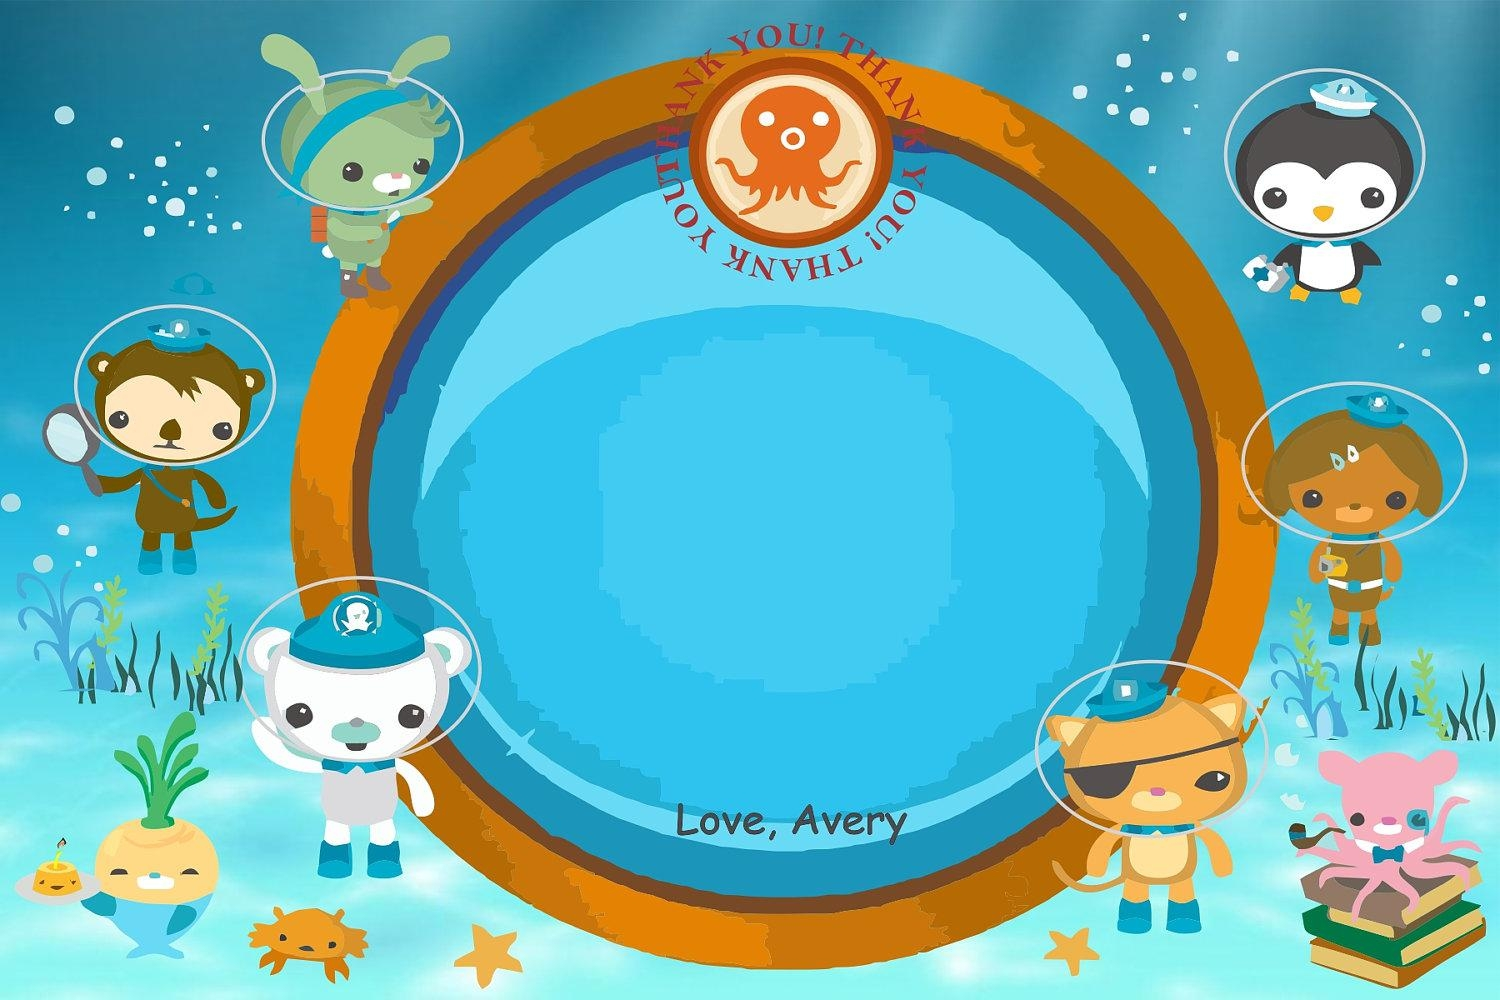 Octonauts Clipart To Print | Octonauts/ Under The Sea | Pinterest Pertaining To Octonauts Wall Art (View 8 of 17)